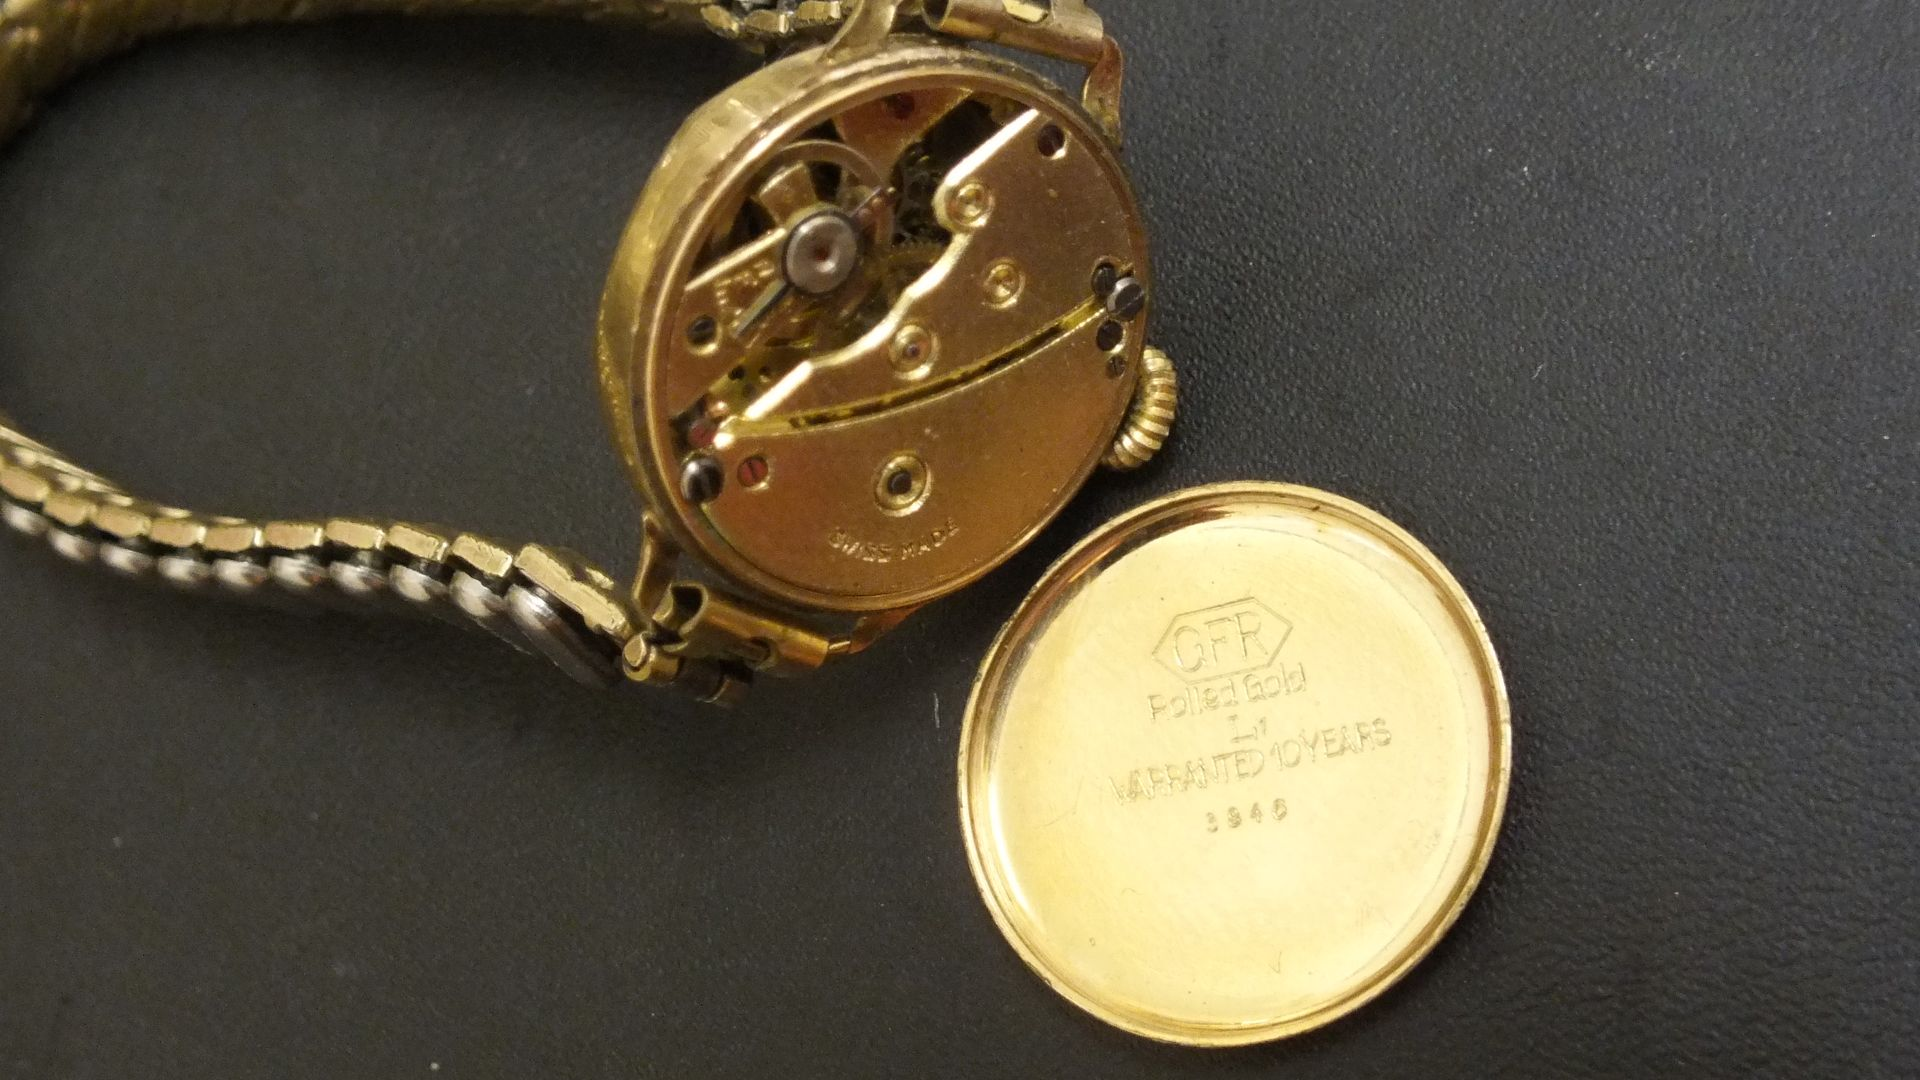 GFR Ladies Rolled Gold Swiss made Watch for project